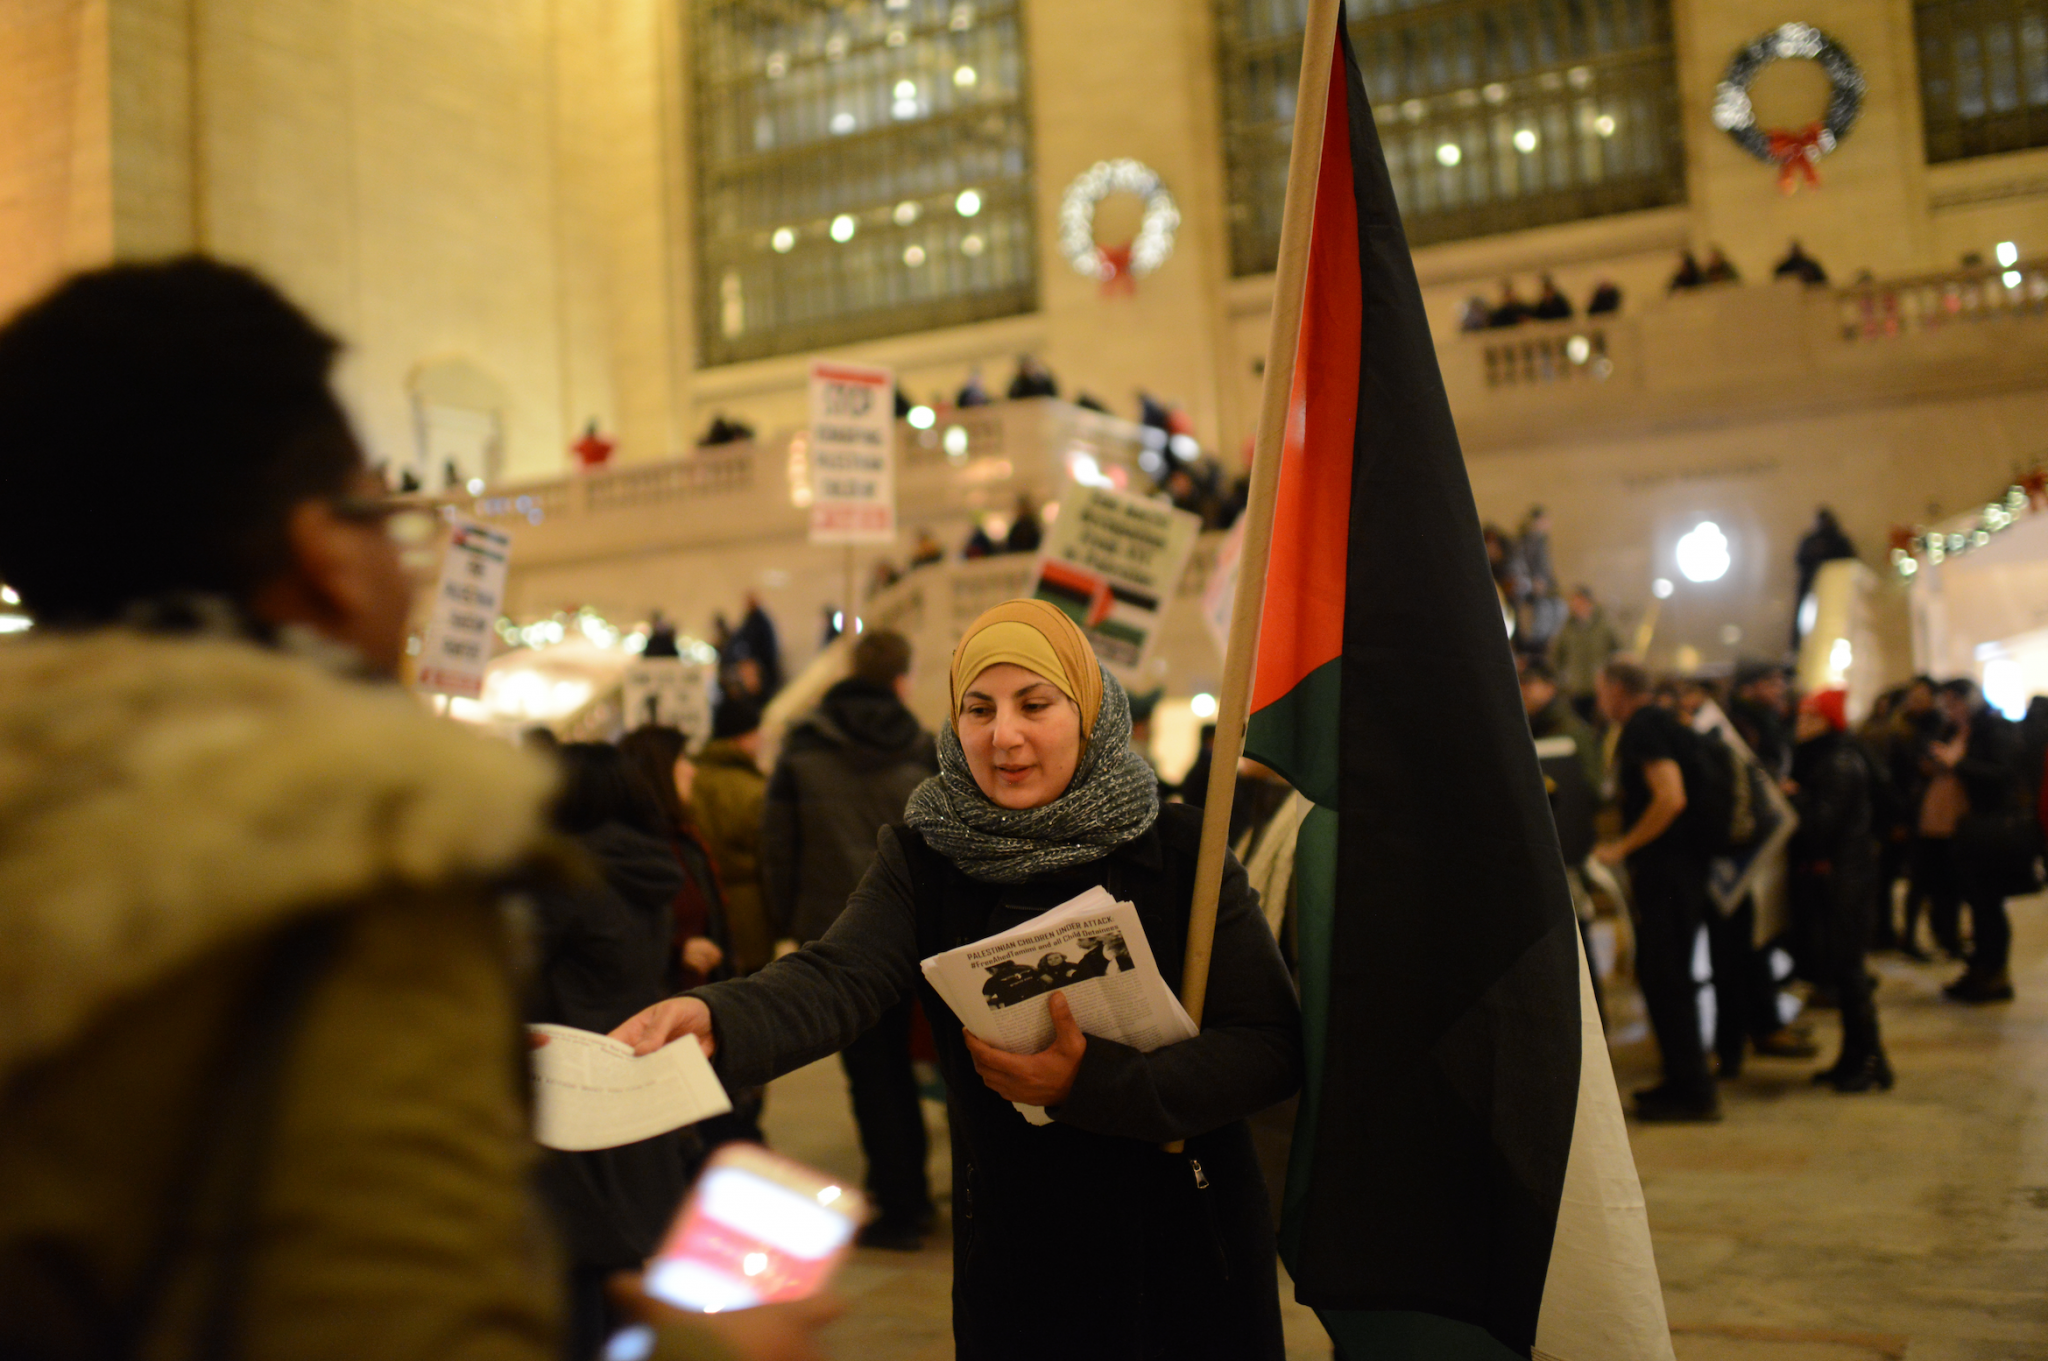 Palestinian activists protest in solidarity with Ahed Tamimi, Grand Central Station, New York City, January 5, 2018. (Gili Getz)